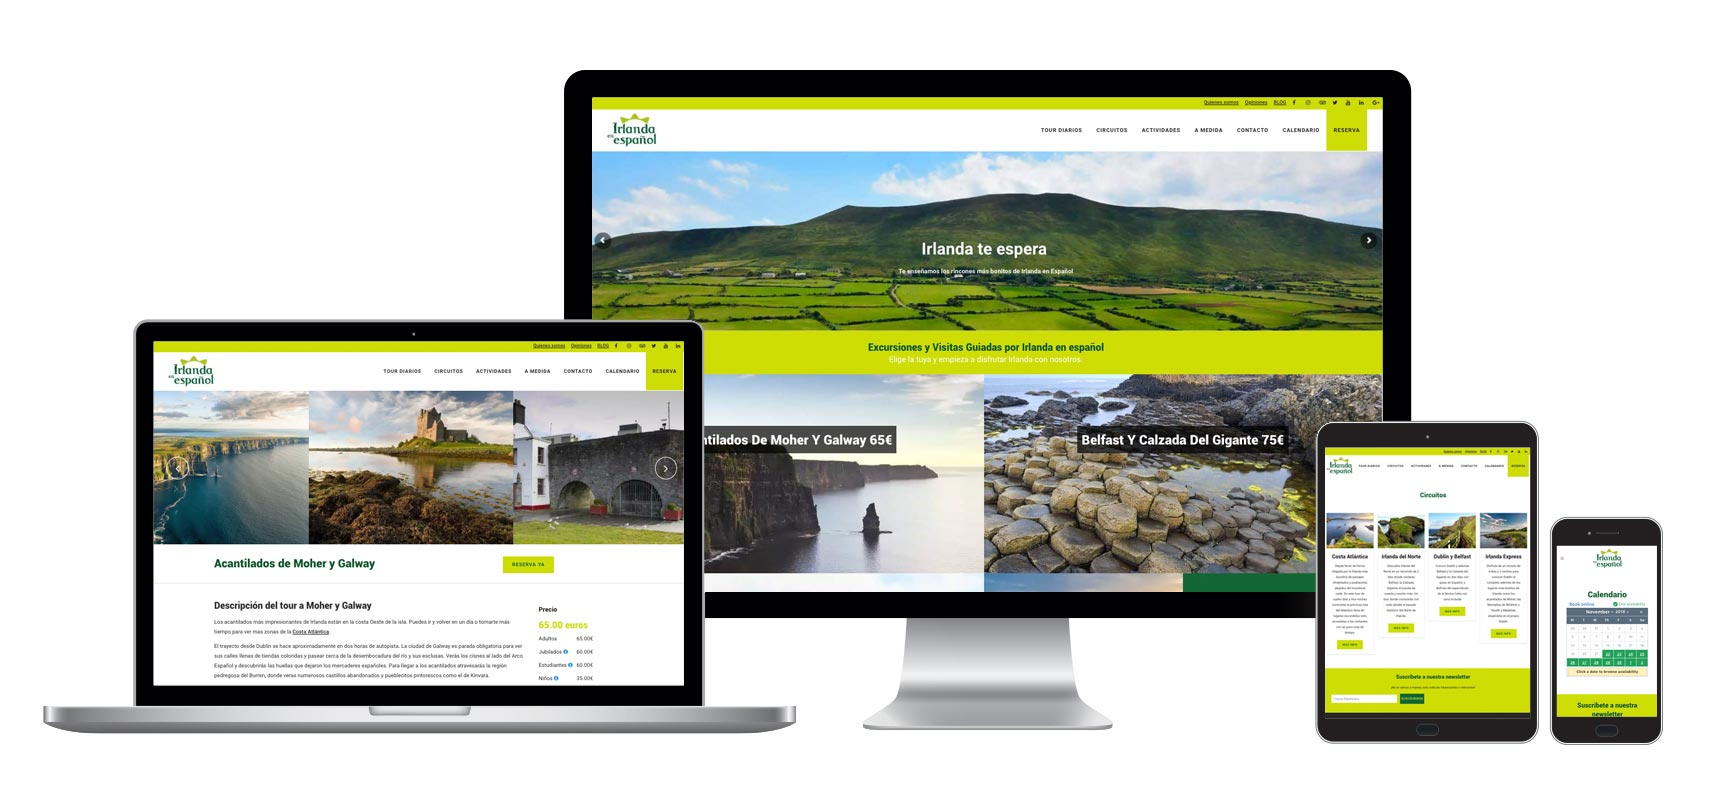 Web Design and Development - Tours Website Ireland